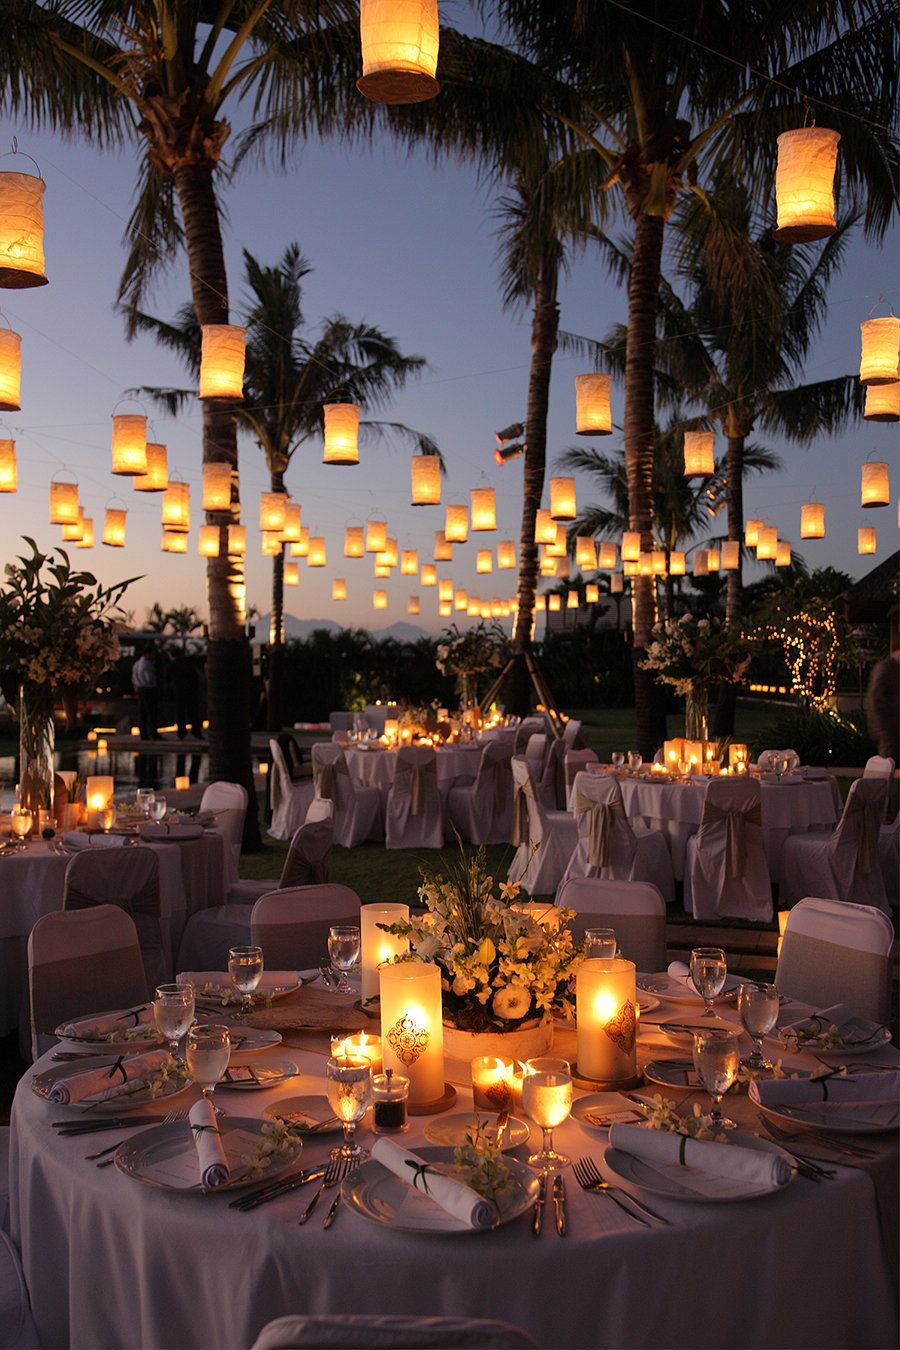 Backyard wedding lighting ideas Elegant Below Are 19 Magical Lighting Ideas That Will Leave Your Guests Positively Spellbound Pinterest 19 Wedding Lighting Ideas That Are Nothing Short Of Magical